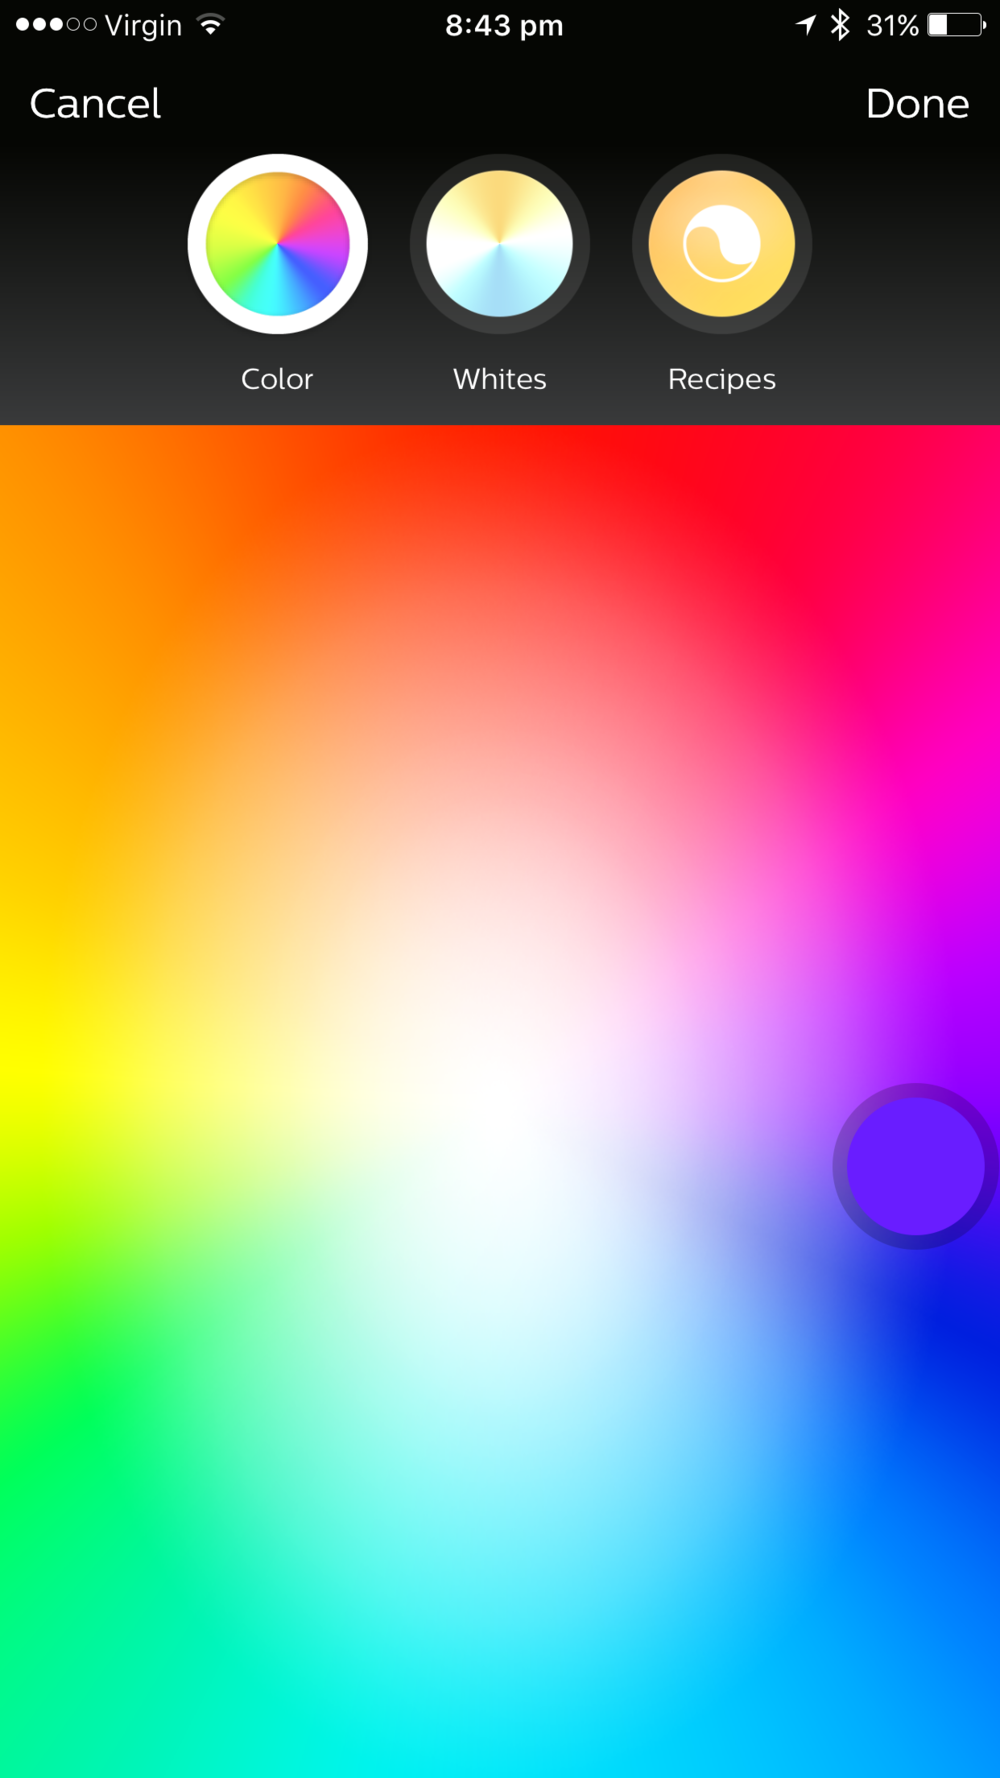 Reported Color